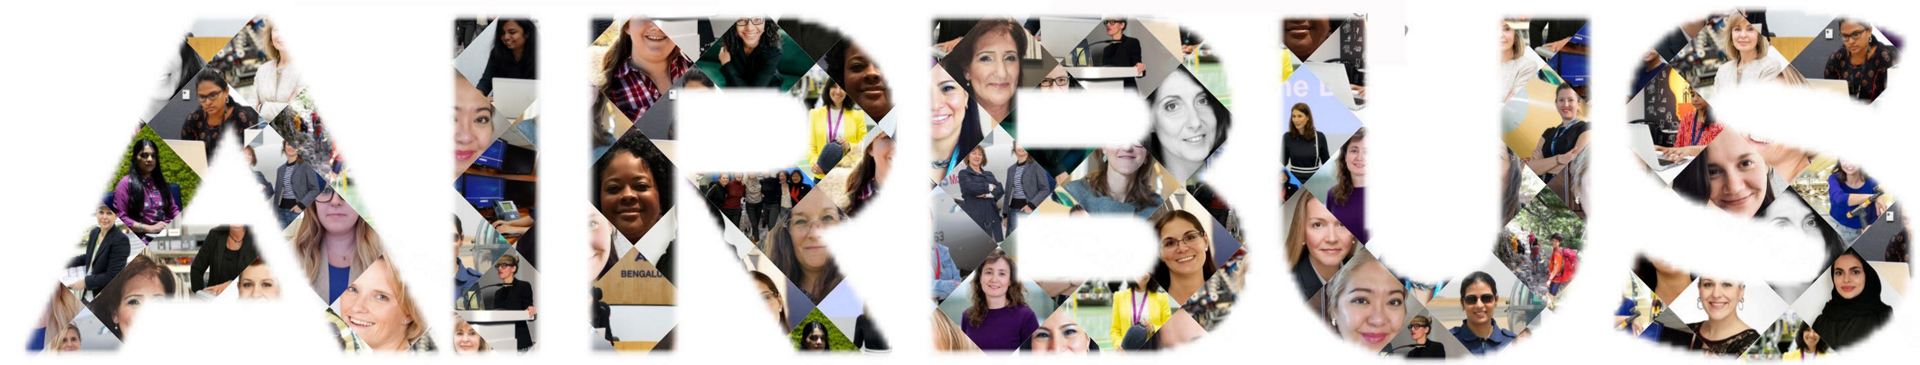 A collage of women's faces that make up the Airbus logo.